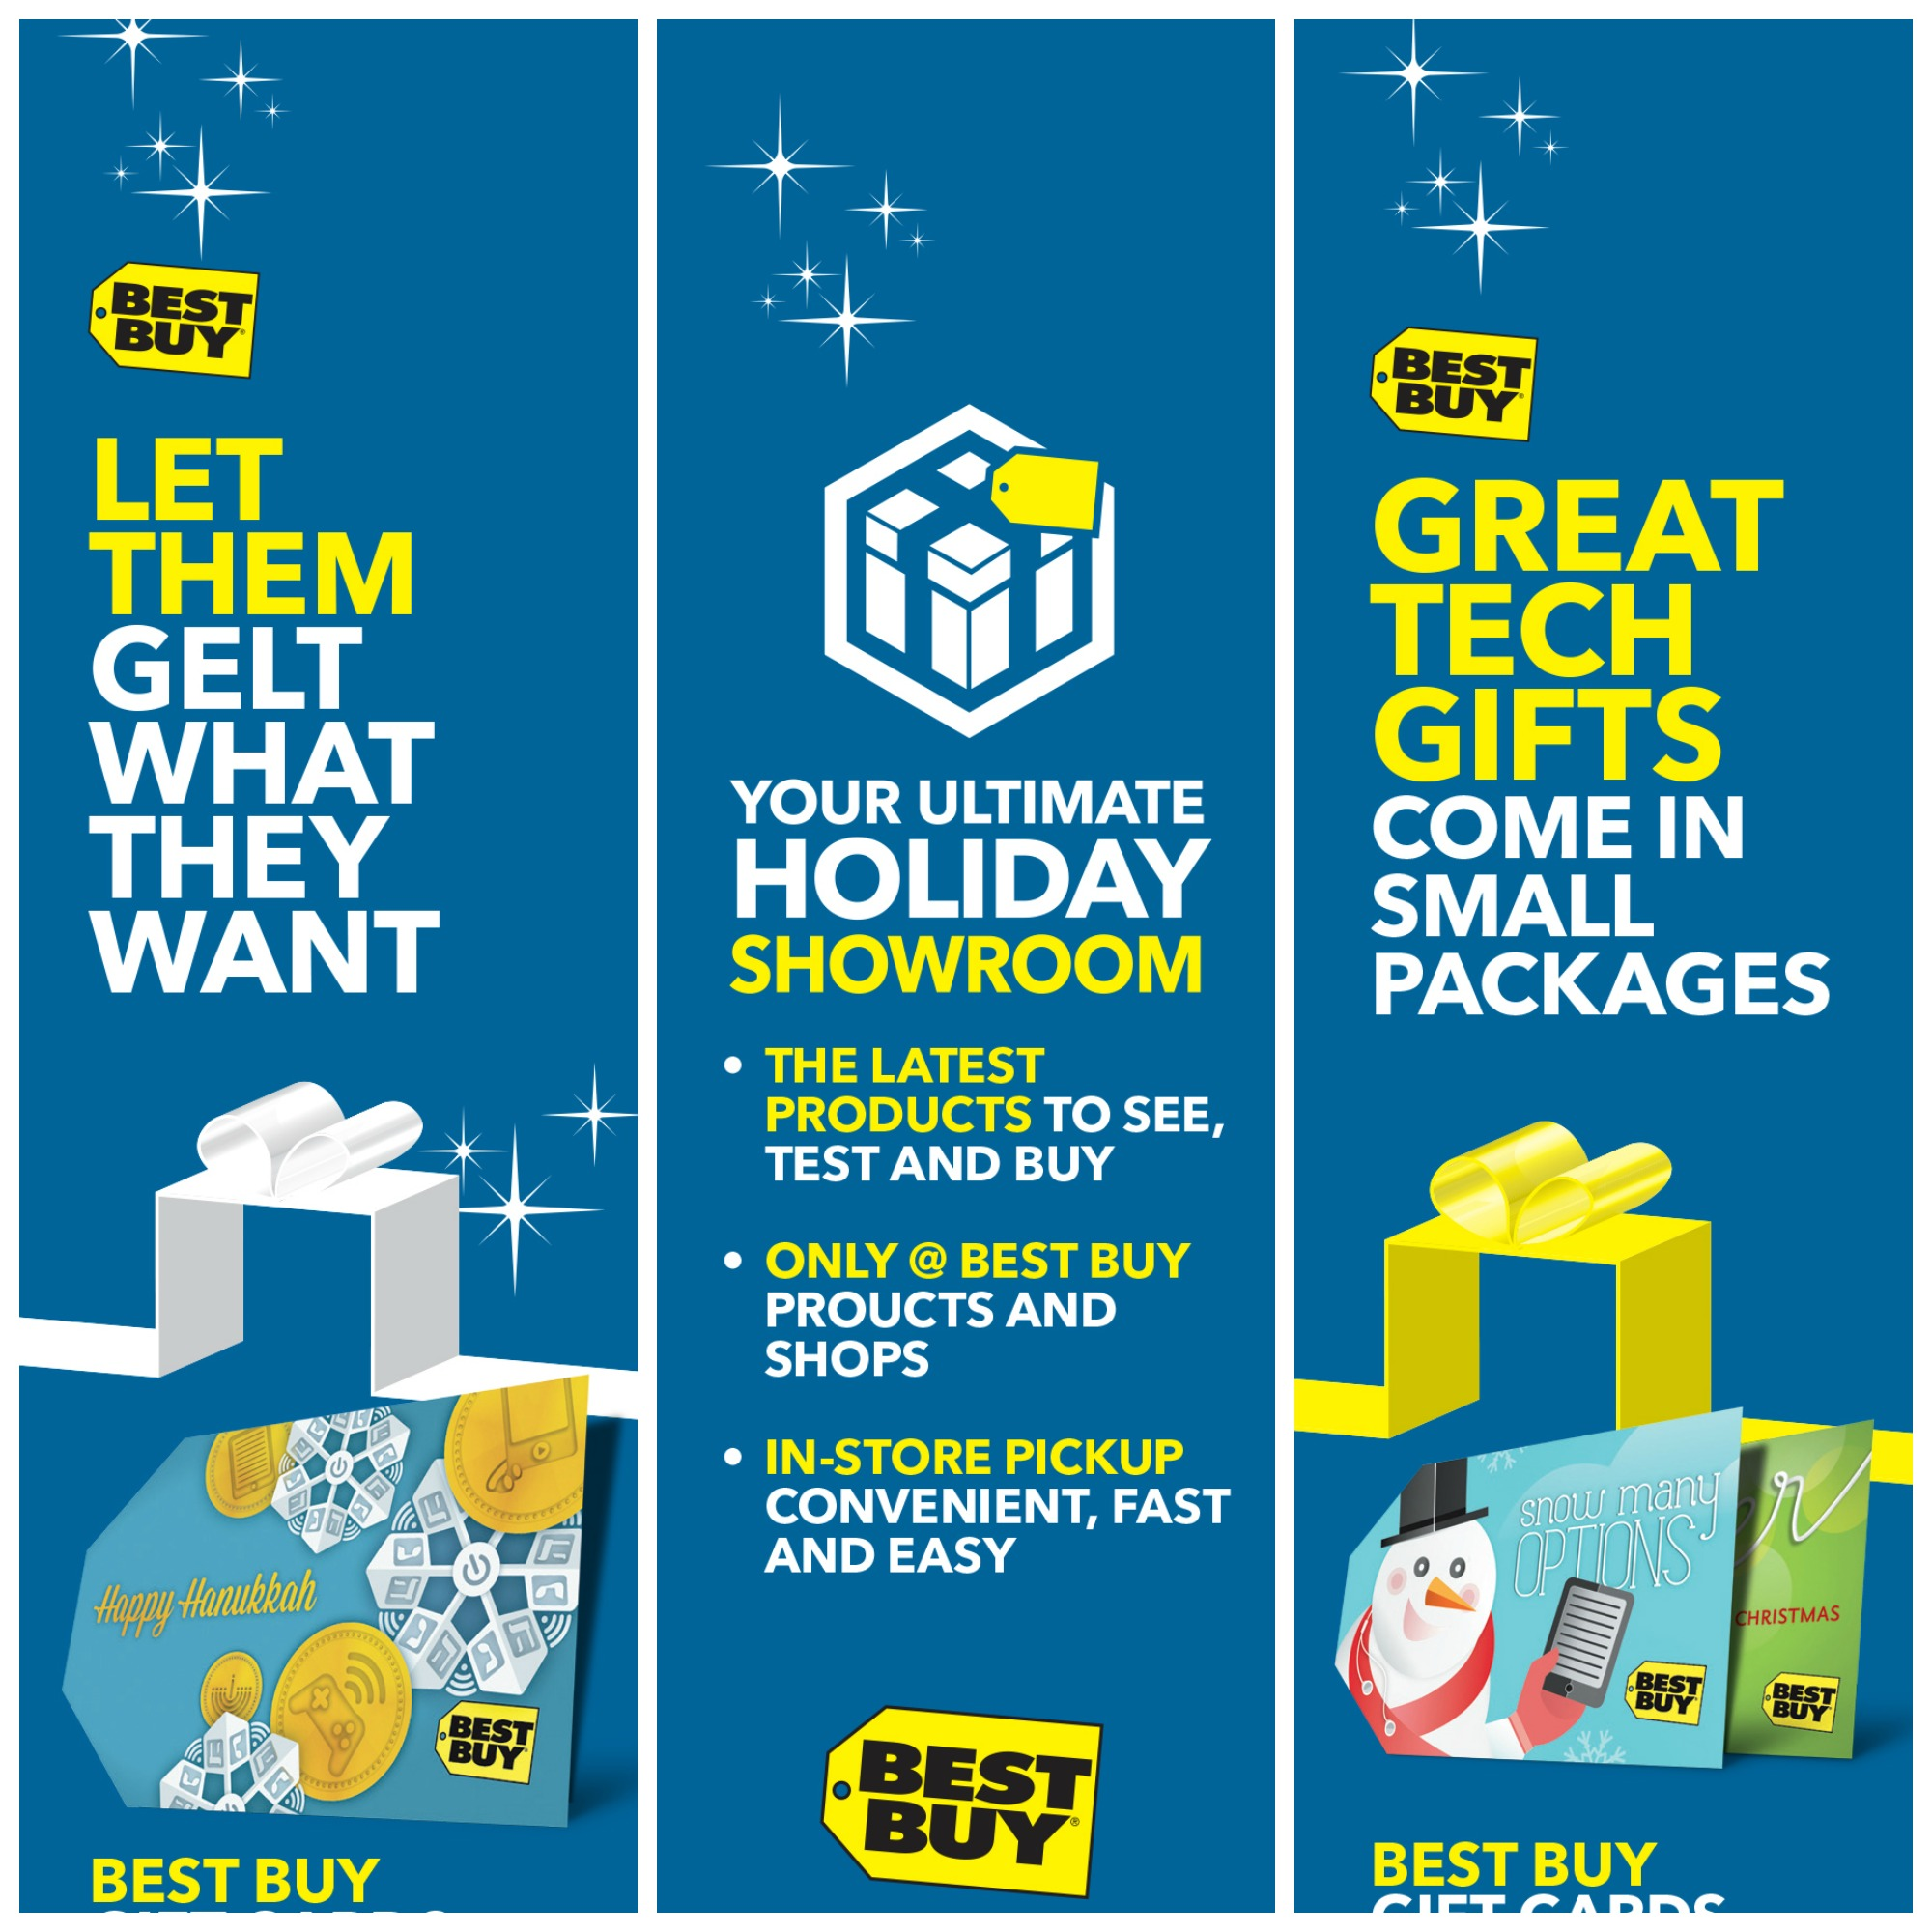 Best Buy Best Holiday Shopping Destination